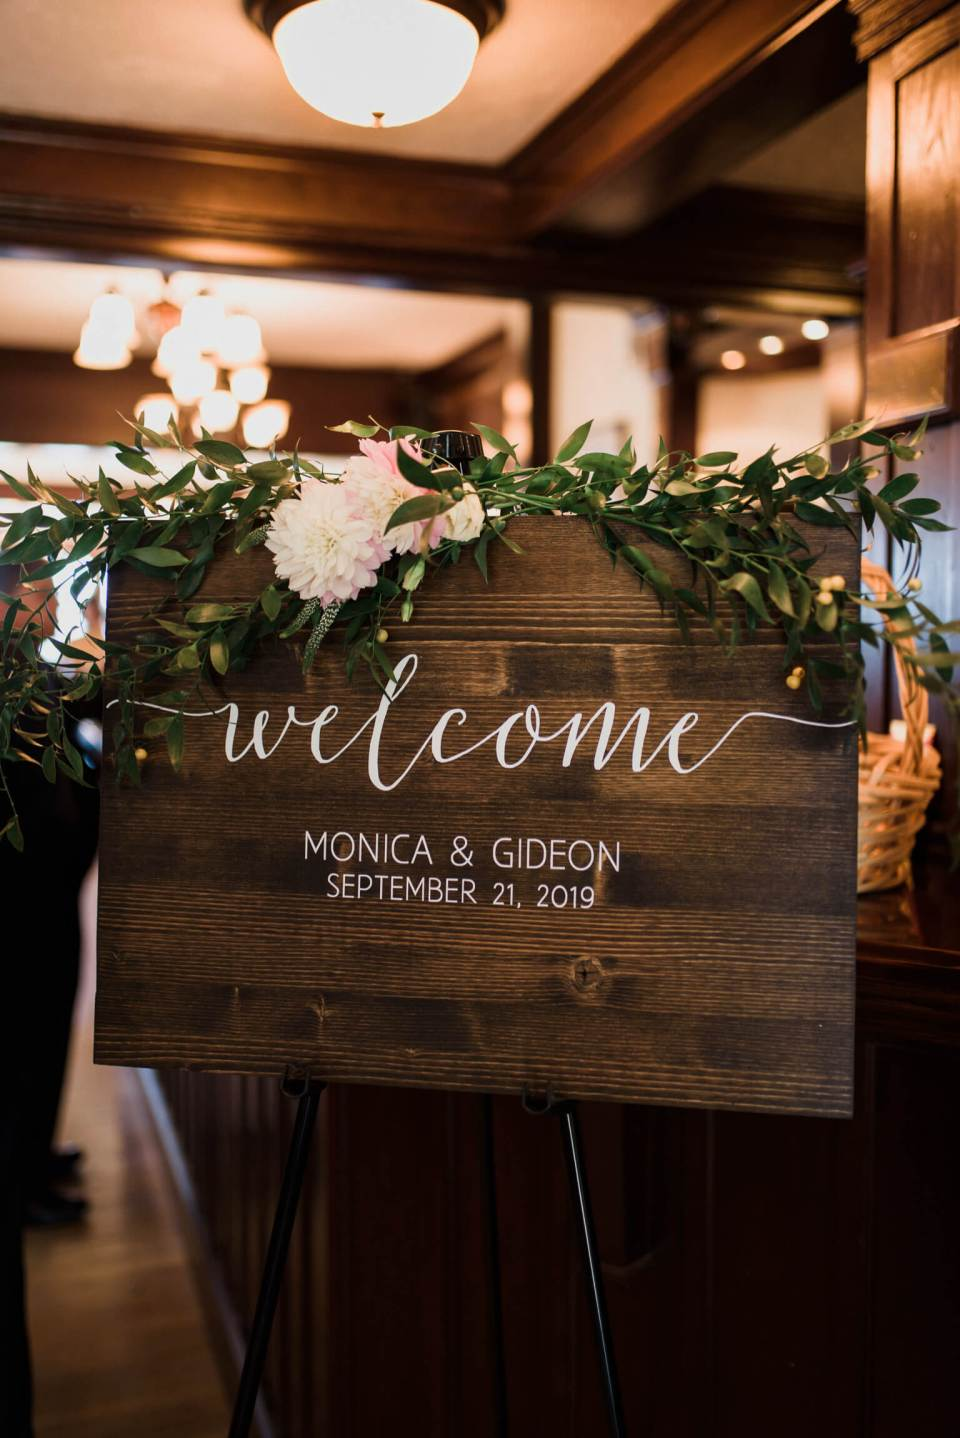 A welcome sign at the intimate waterfront wedding of Gideon and Monica.